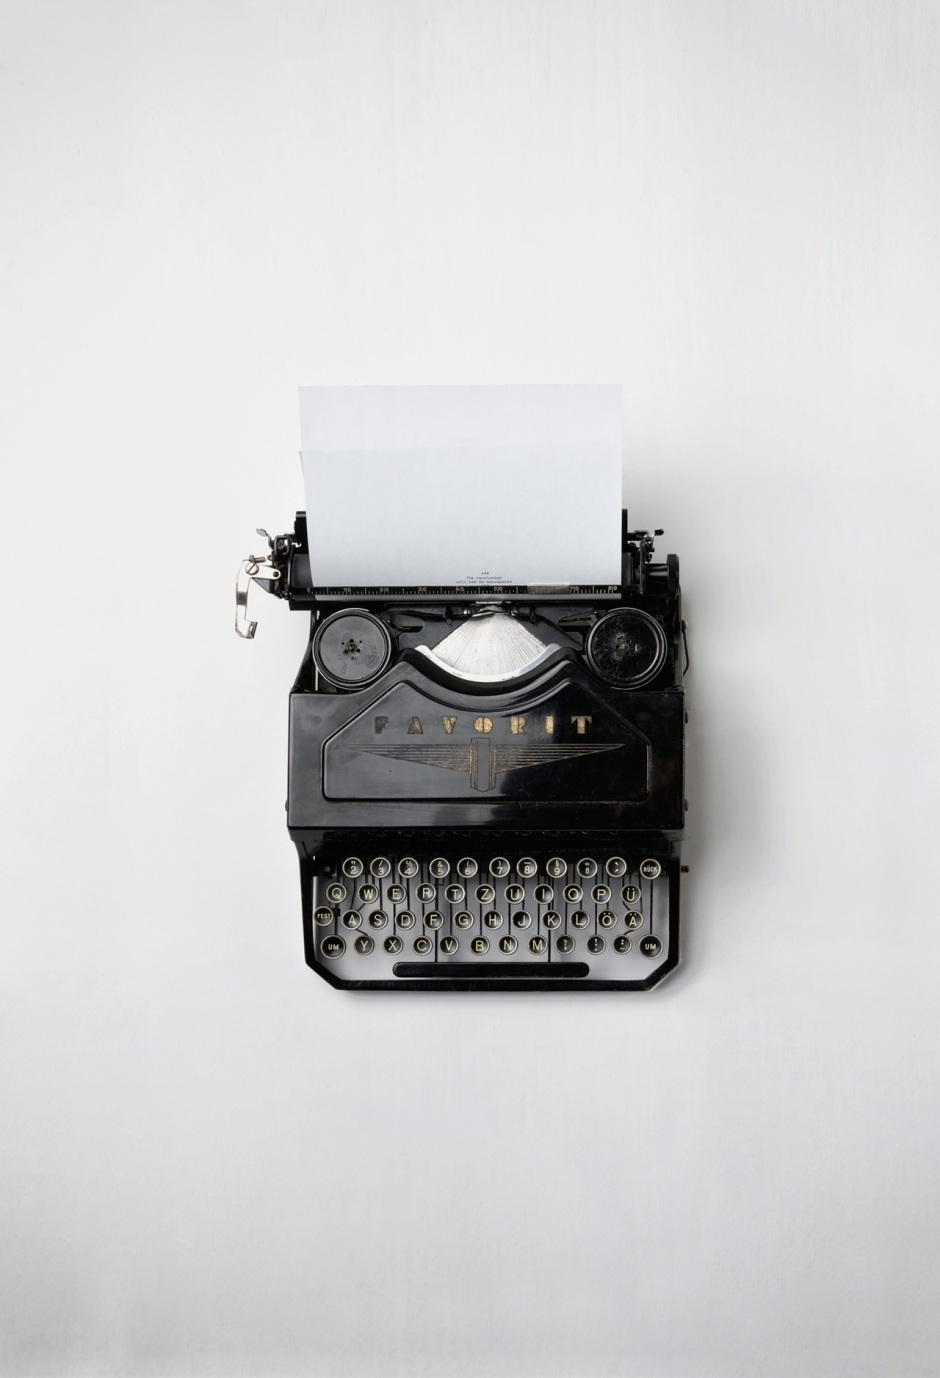 typing-vintage-technology-keyboard being-creative-on-a-whim-typing-not-judging-1-medium writing tips advice for writers | BL | Black Lion Journal | Black Lion